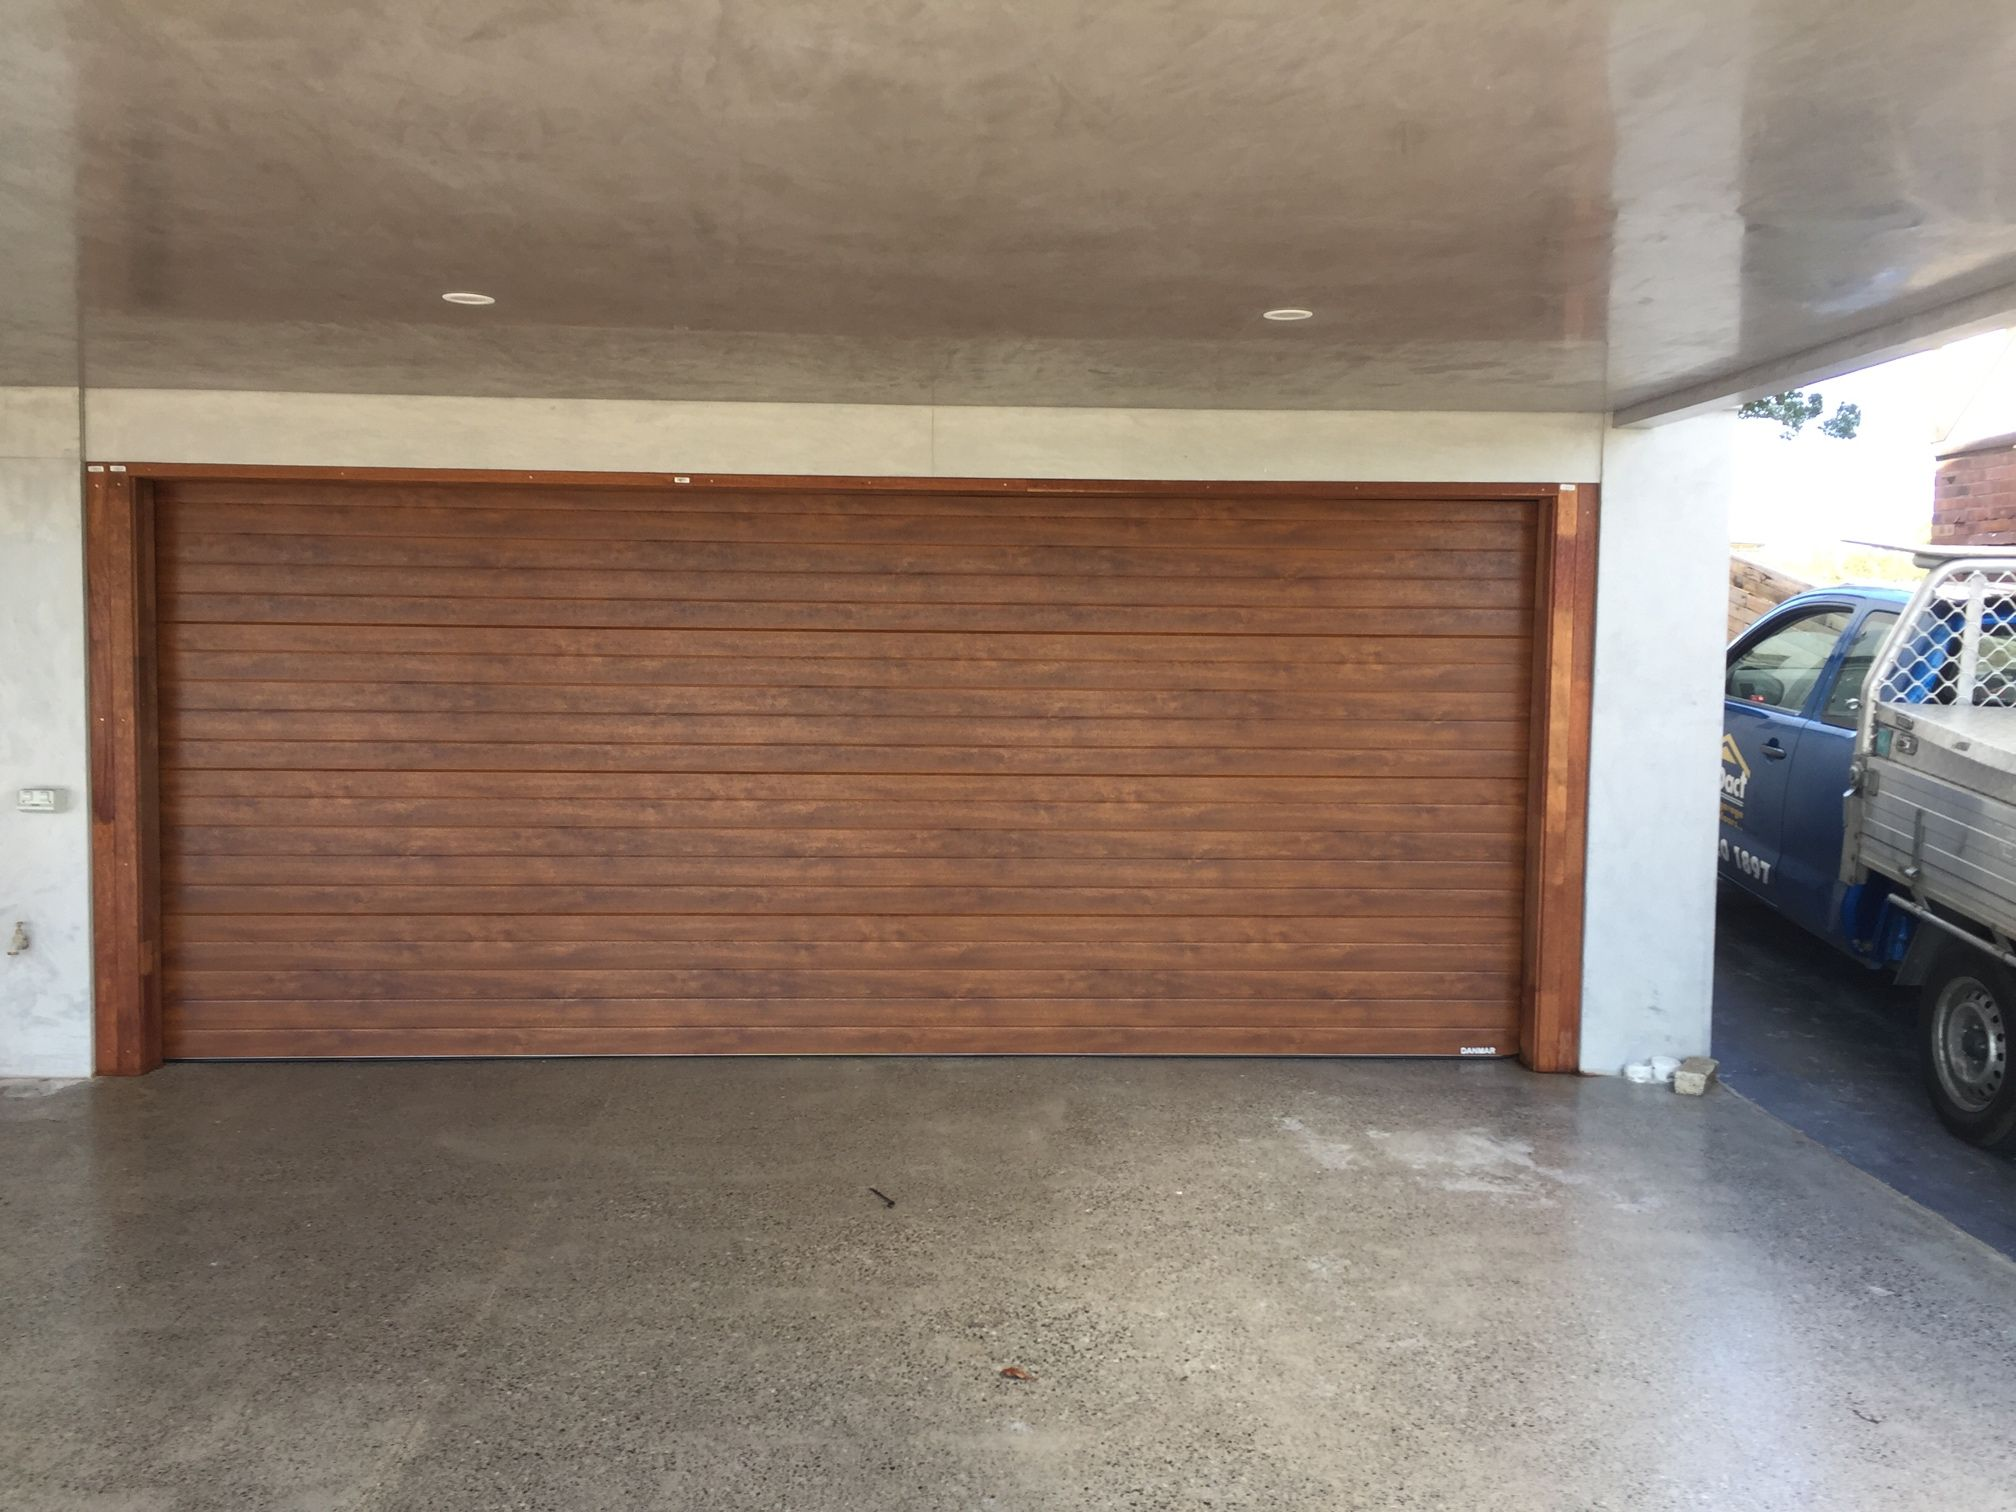 Thermofine Insulated Installed By Impact Garage Doors Garage Door Design Garage Doors Decor